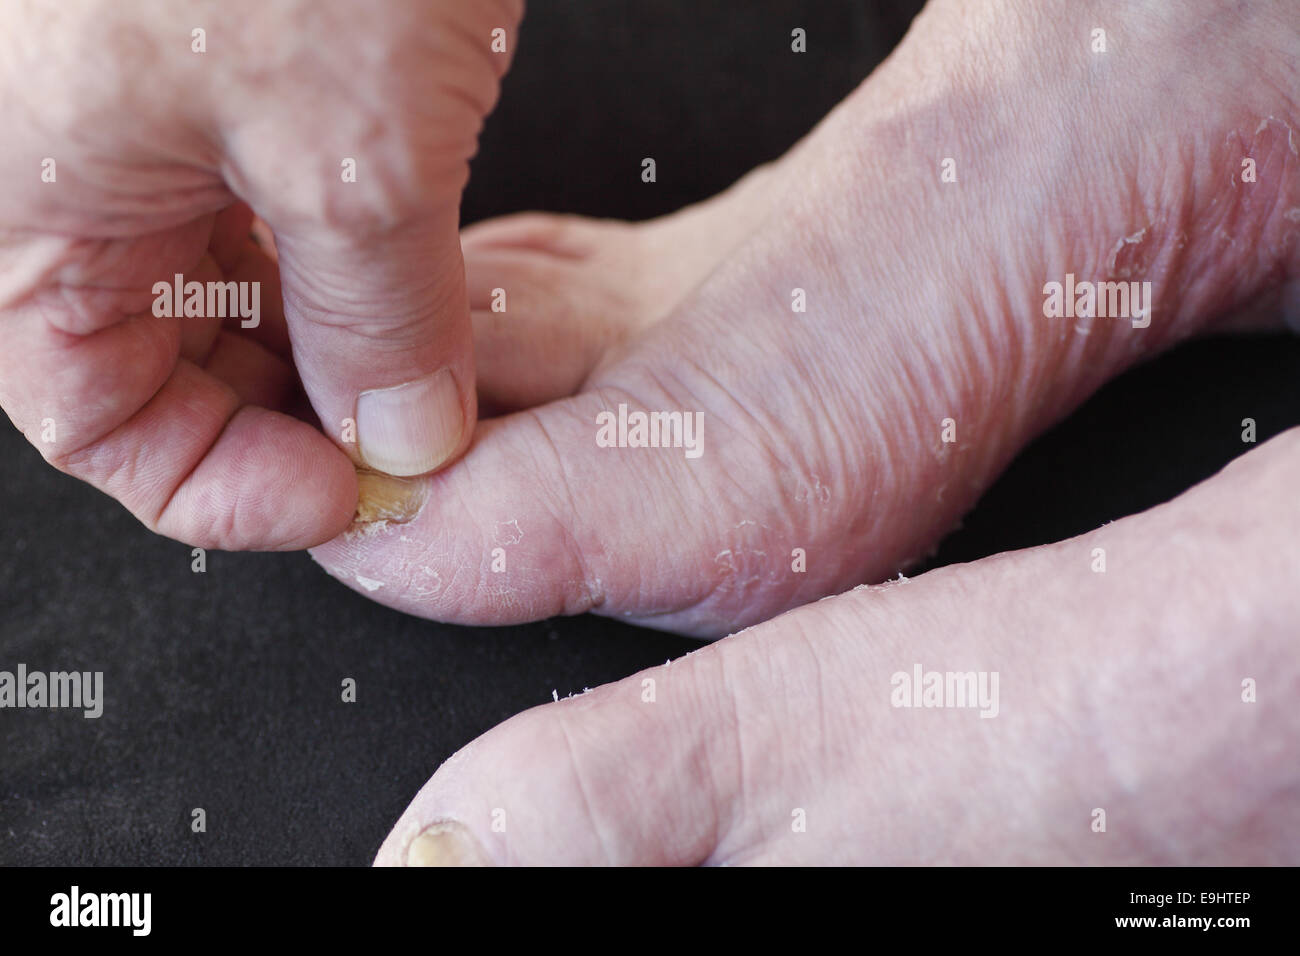 a man s foot with toenail fungus and dry peeling skin from